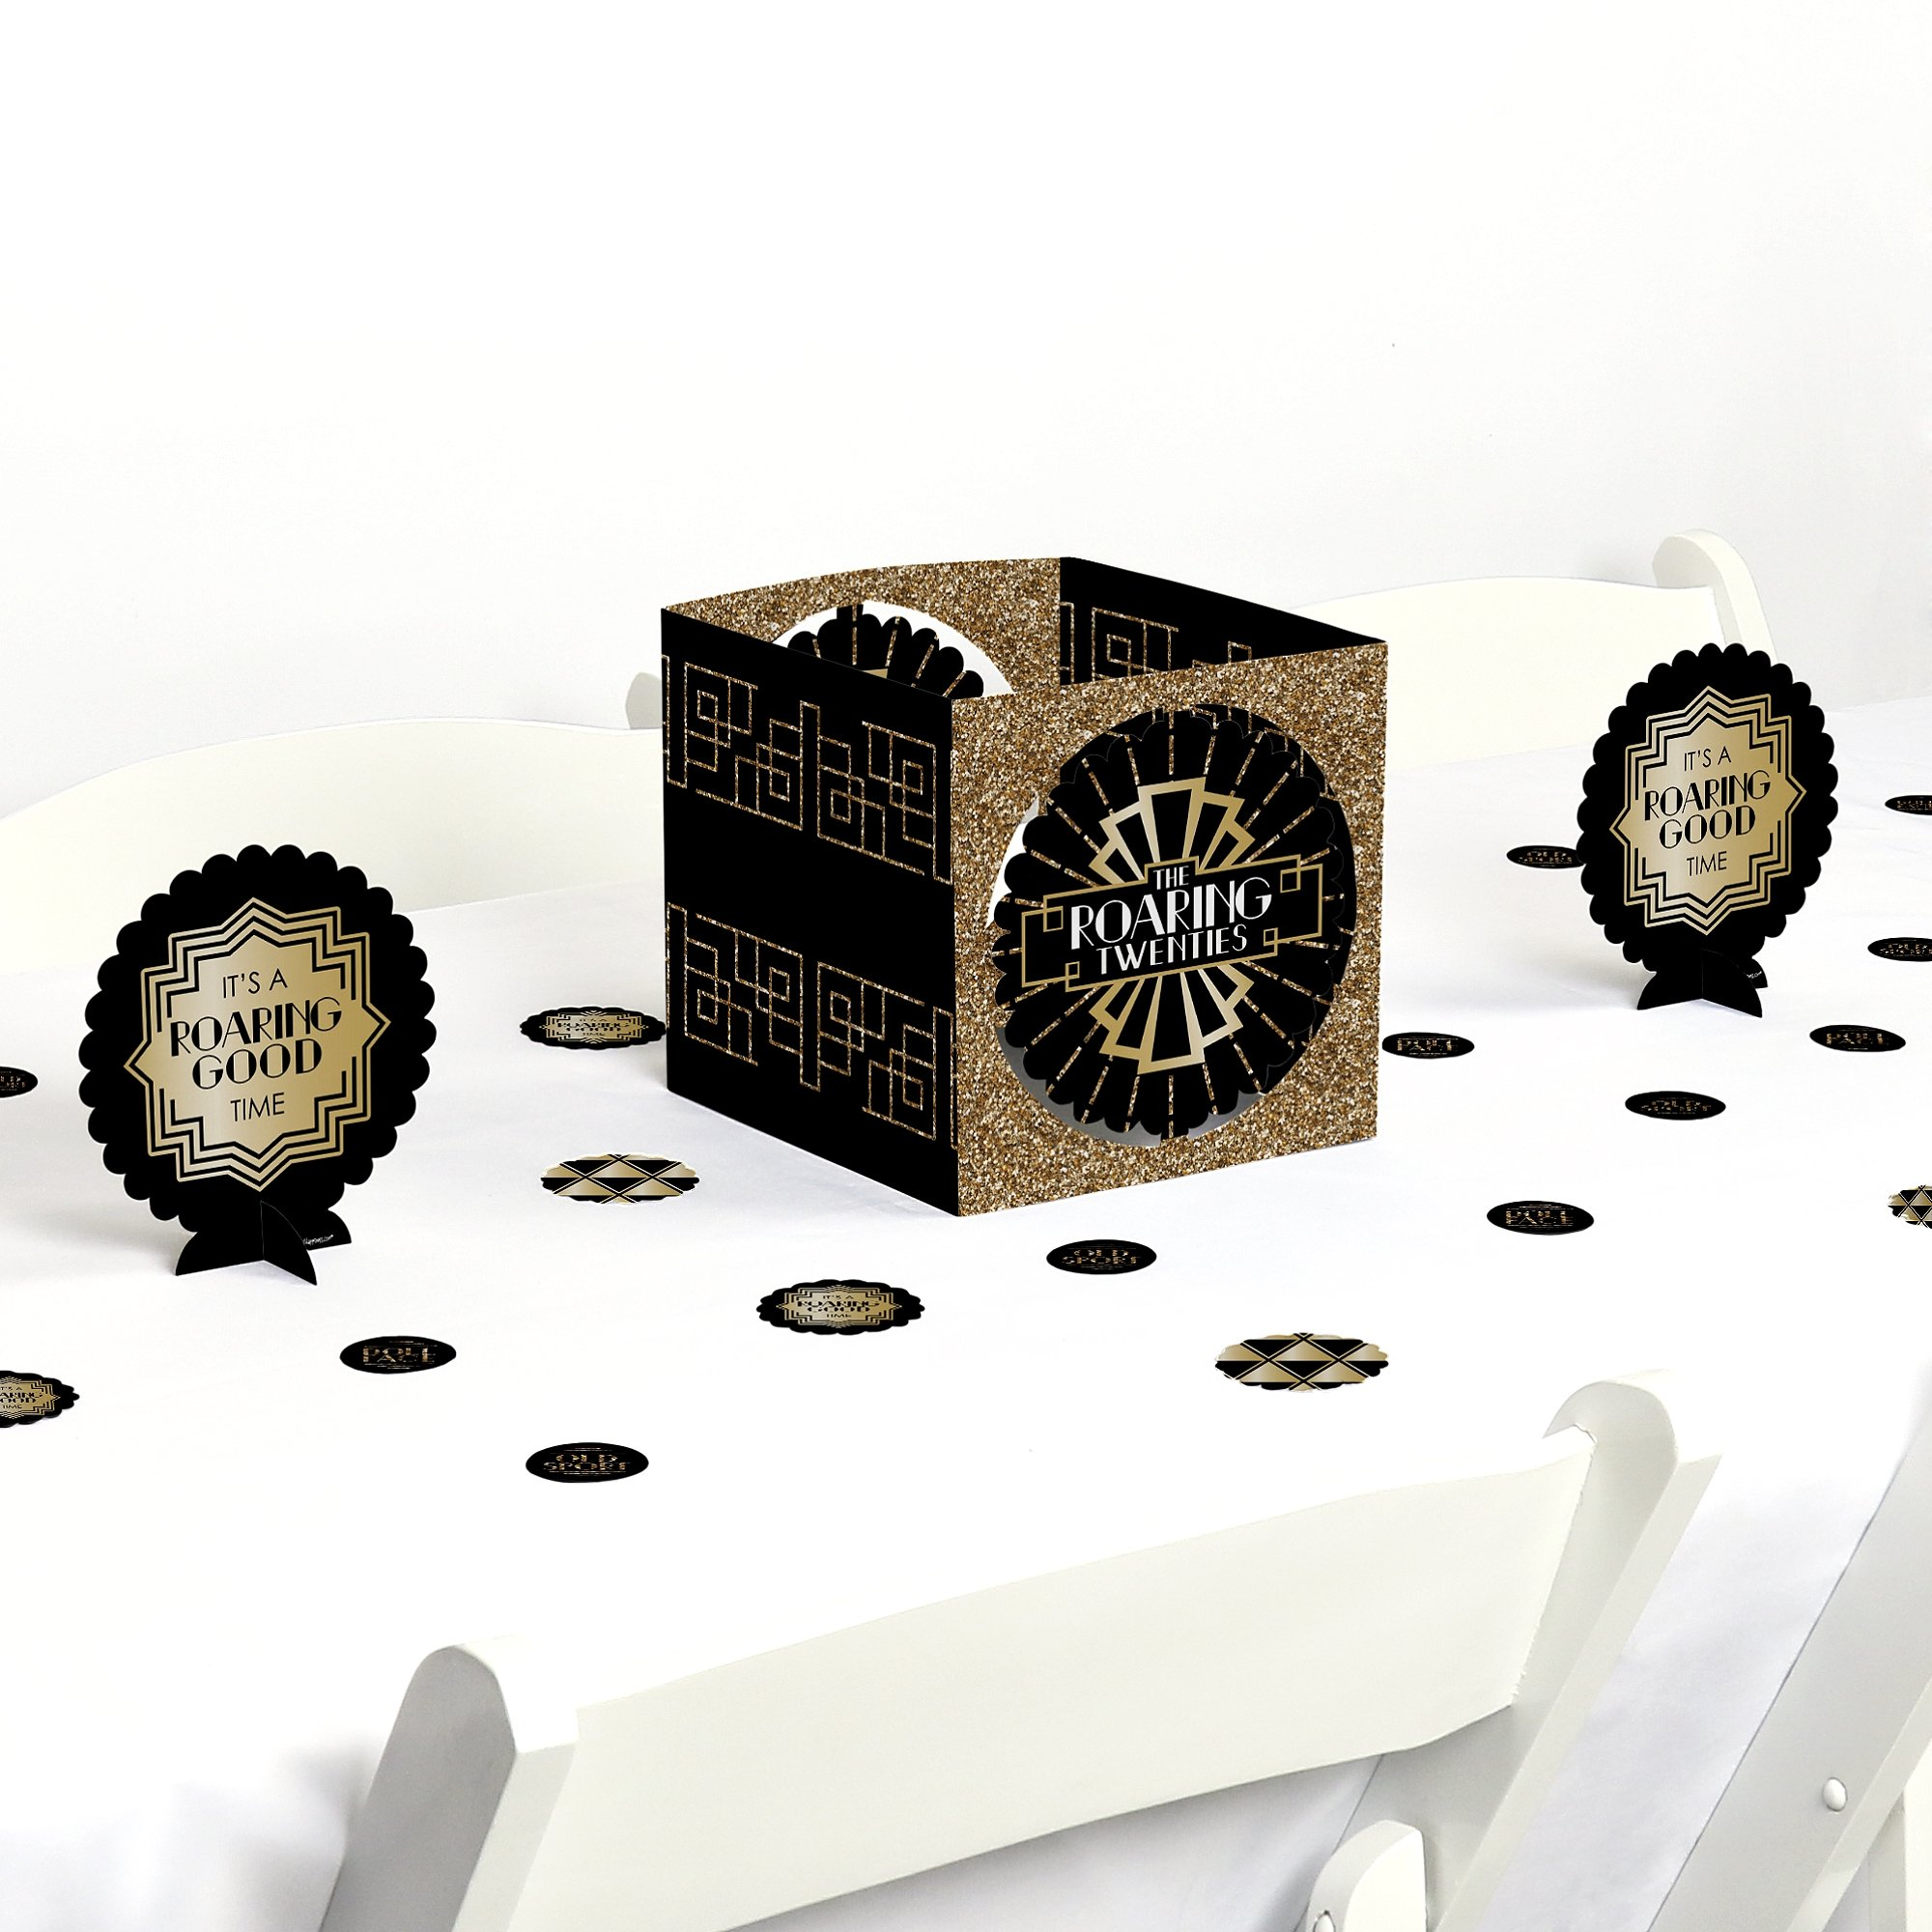 Roaring 20's - 1920s Art Deco Jazz Party Centerpiece & Table Decoration Kit by Big Dot of Happiness